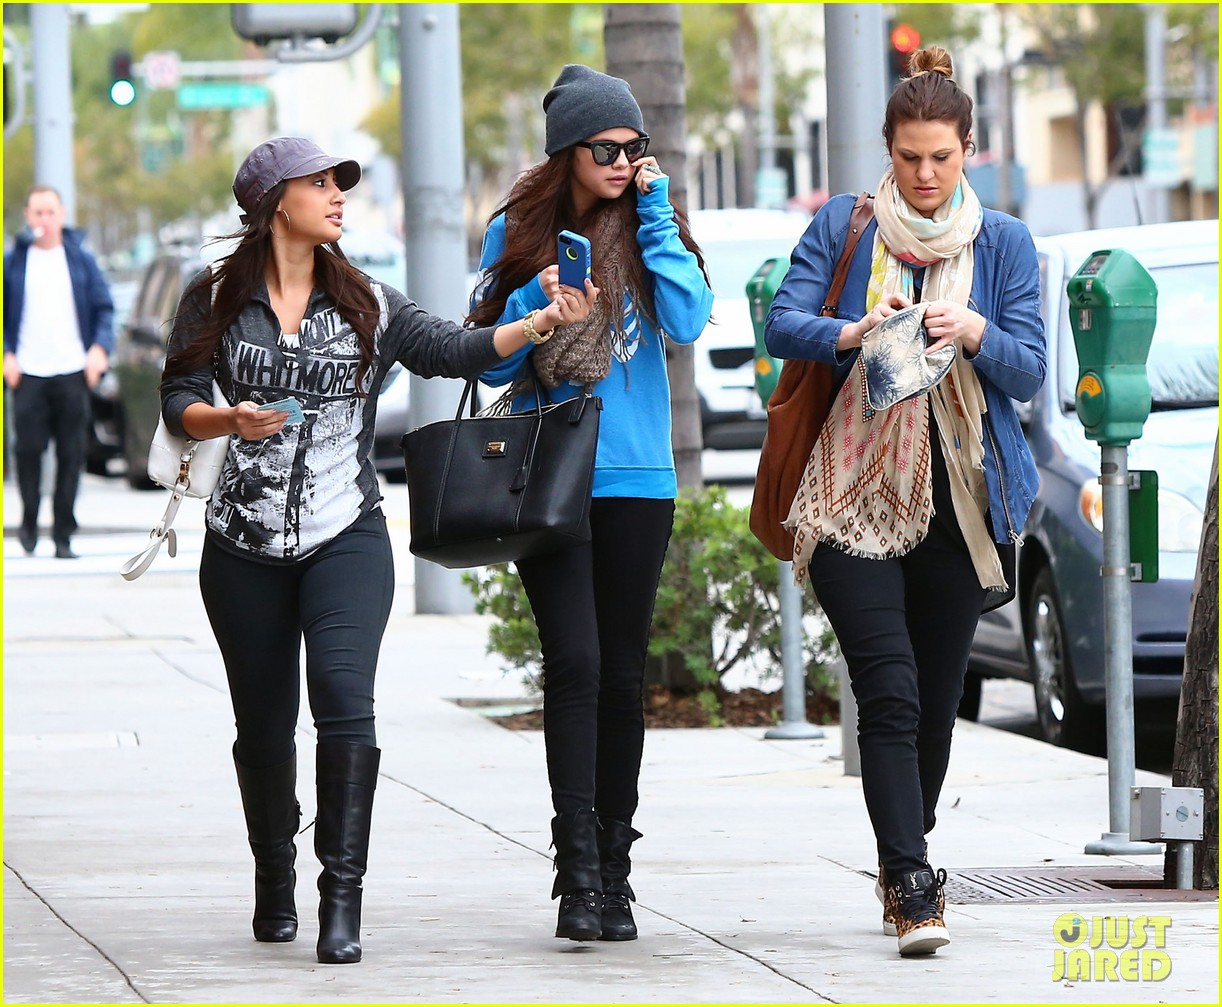 selena gomez wizards returns sets premiere date 07 عکس های جدید سلنا گومز